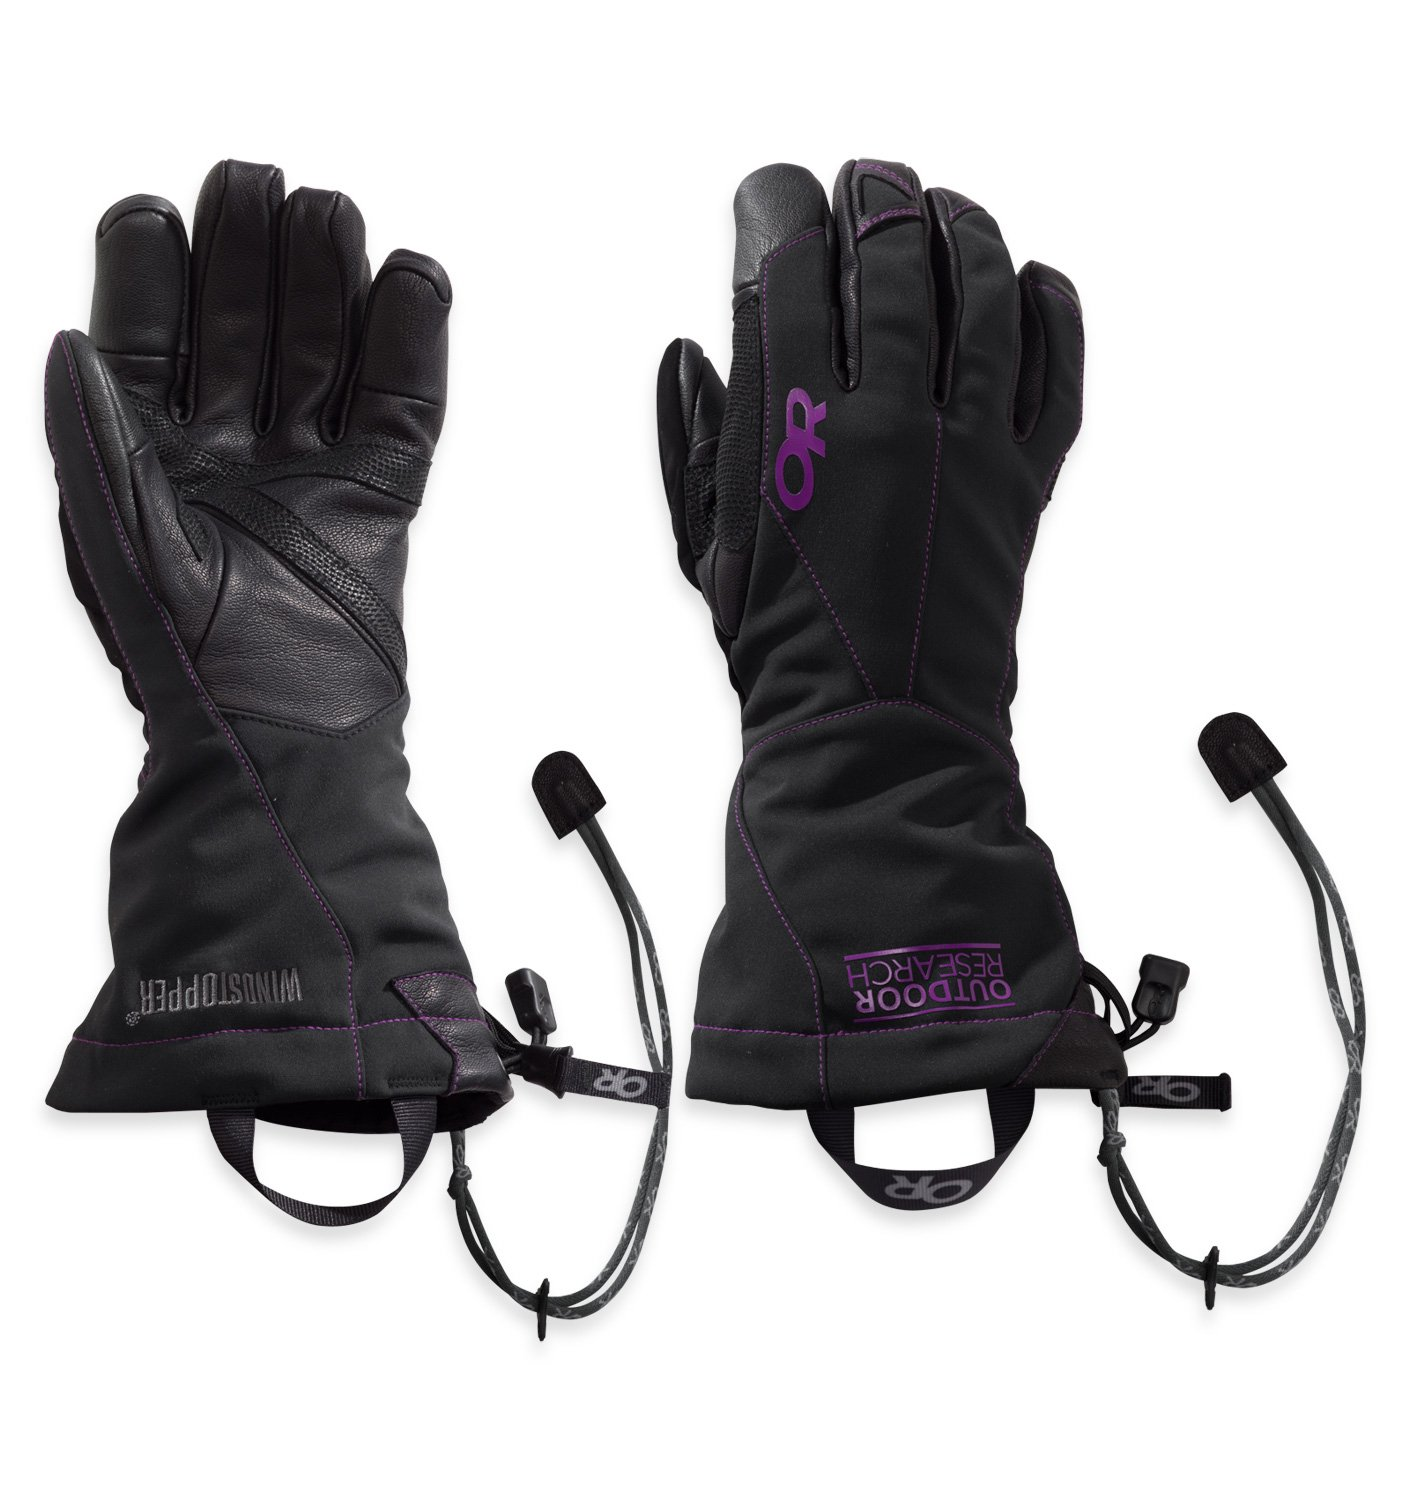 Outdoor Research Women's Luminary Sensor Gloves 243339